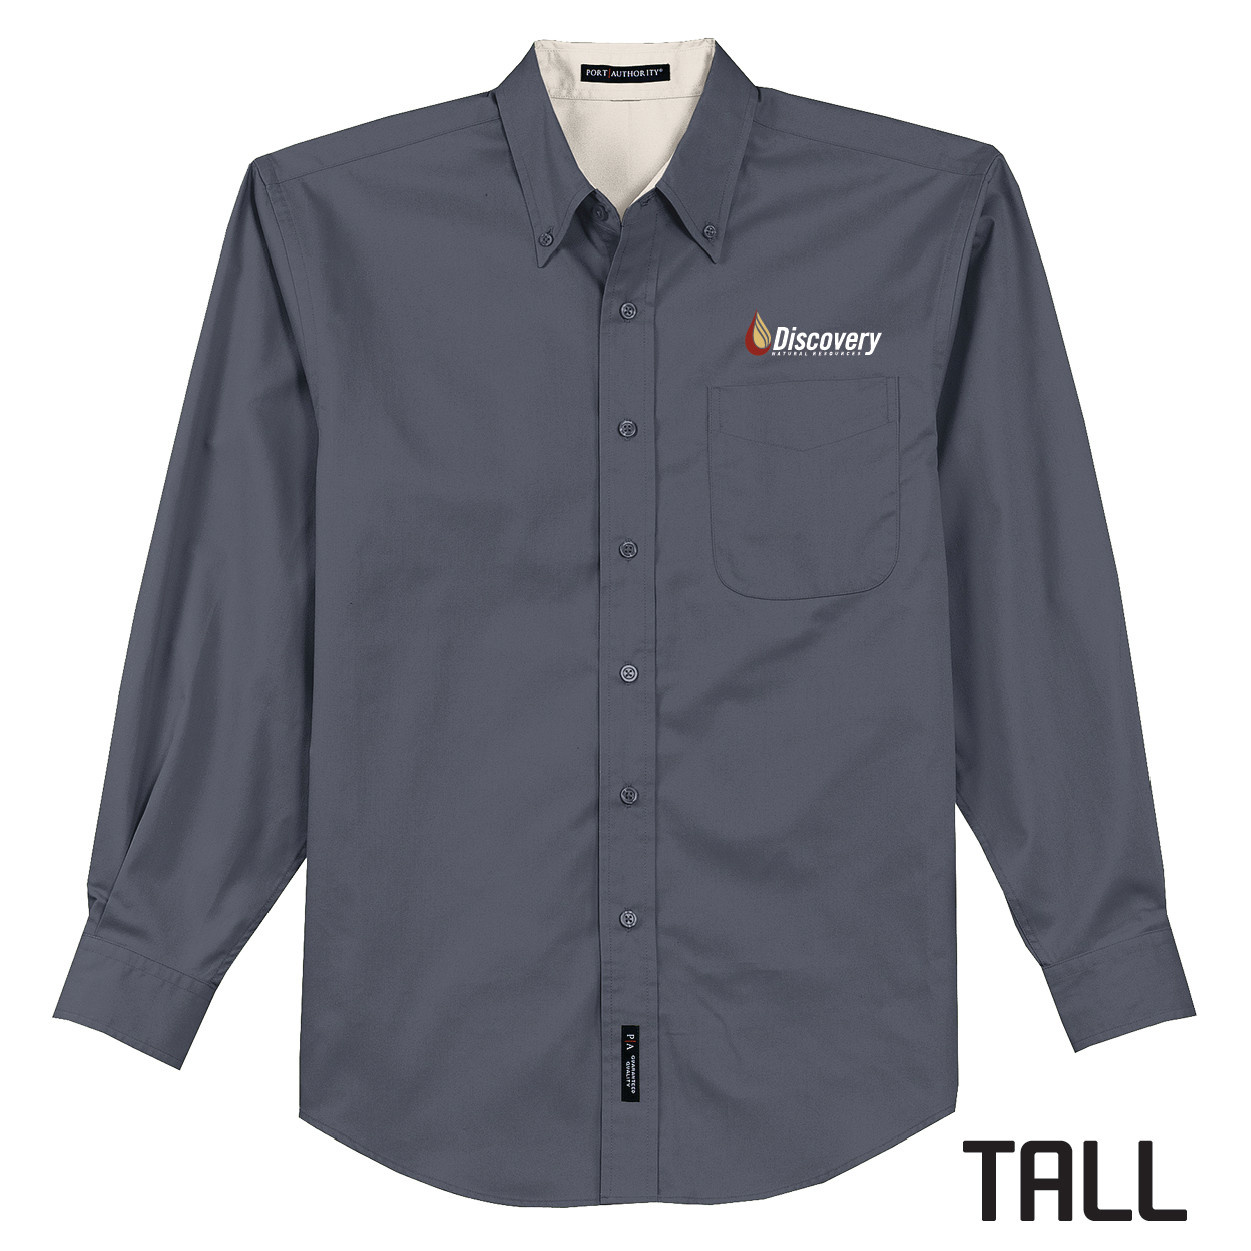 Port Authority Port Authority TALL Long Sleeve Easy Care Shirt (Steel Grey)